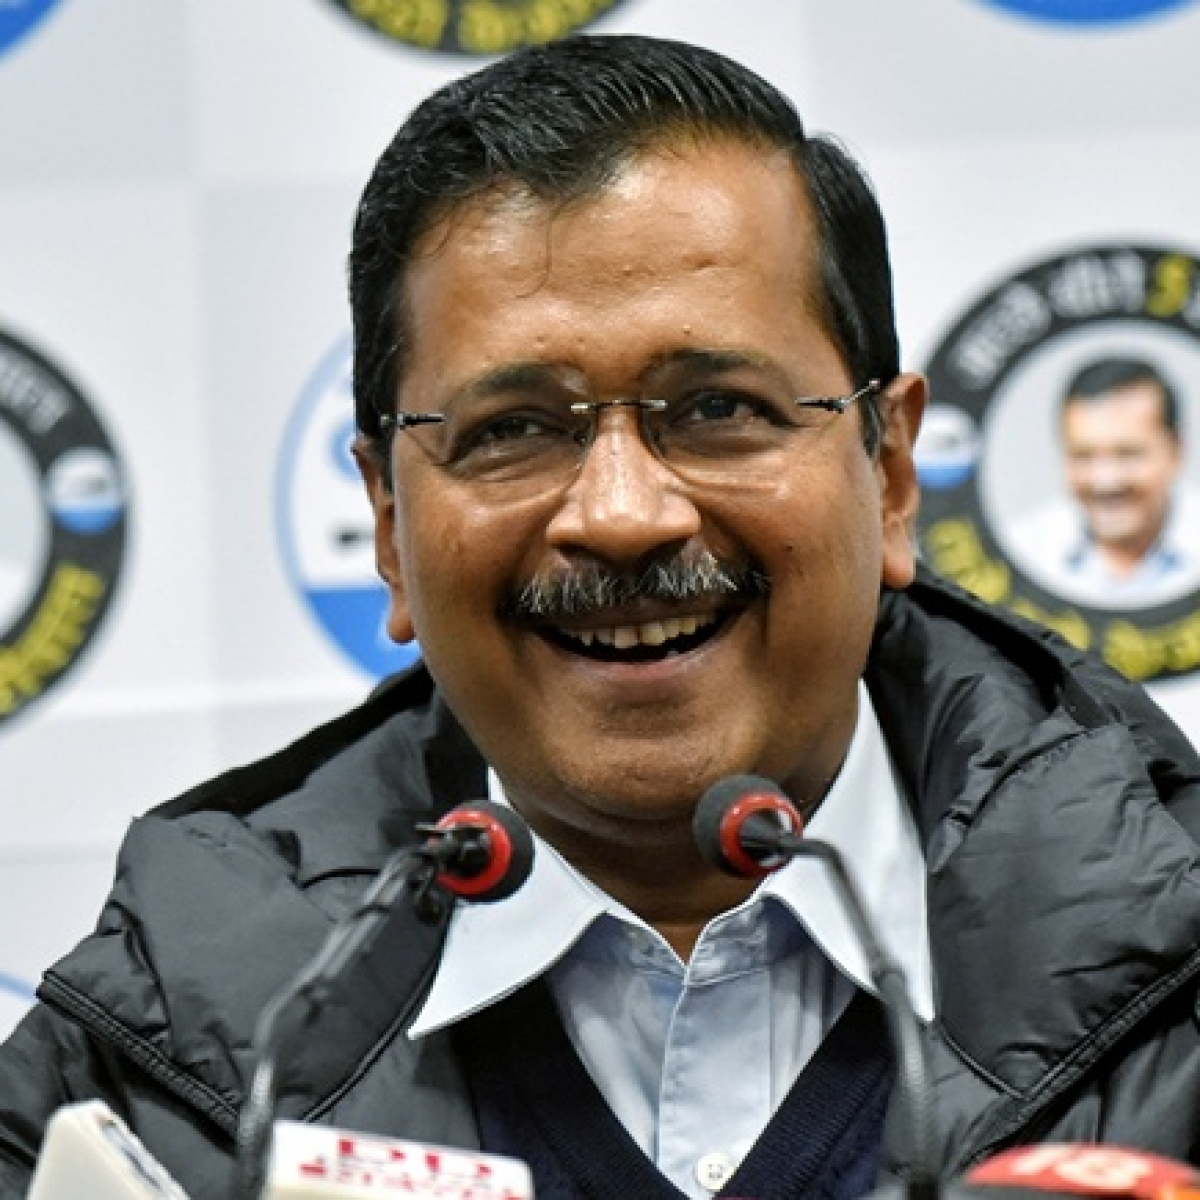 Delhi Election Results 2020: CM Arvind Kejriwal surges to big lead from New Delhi constituency